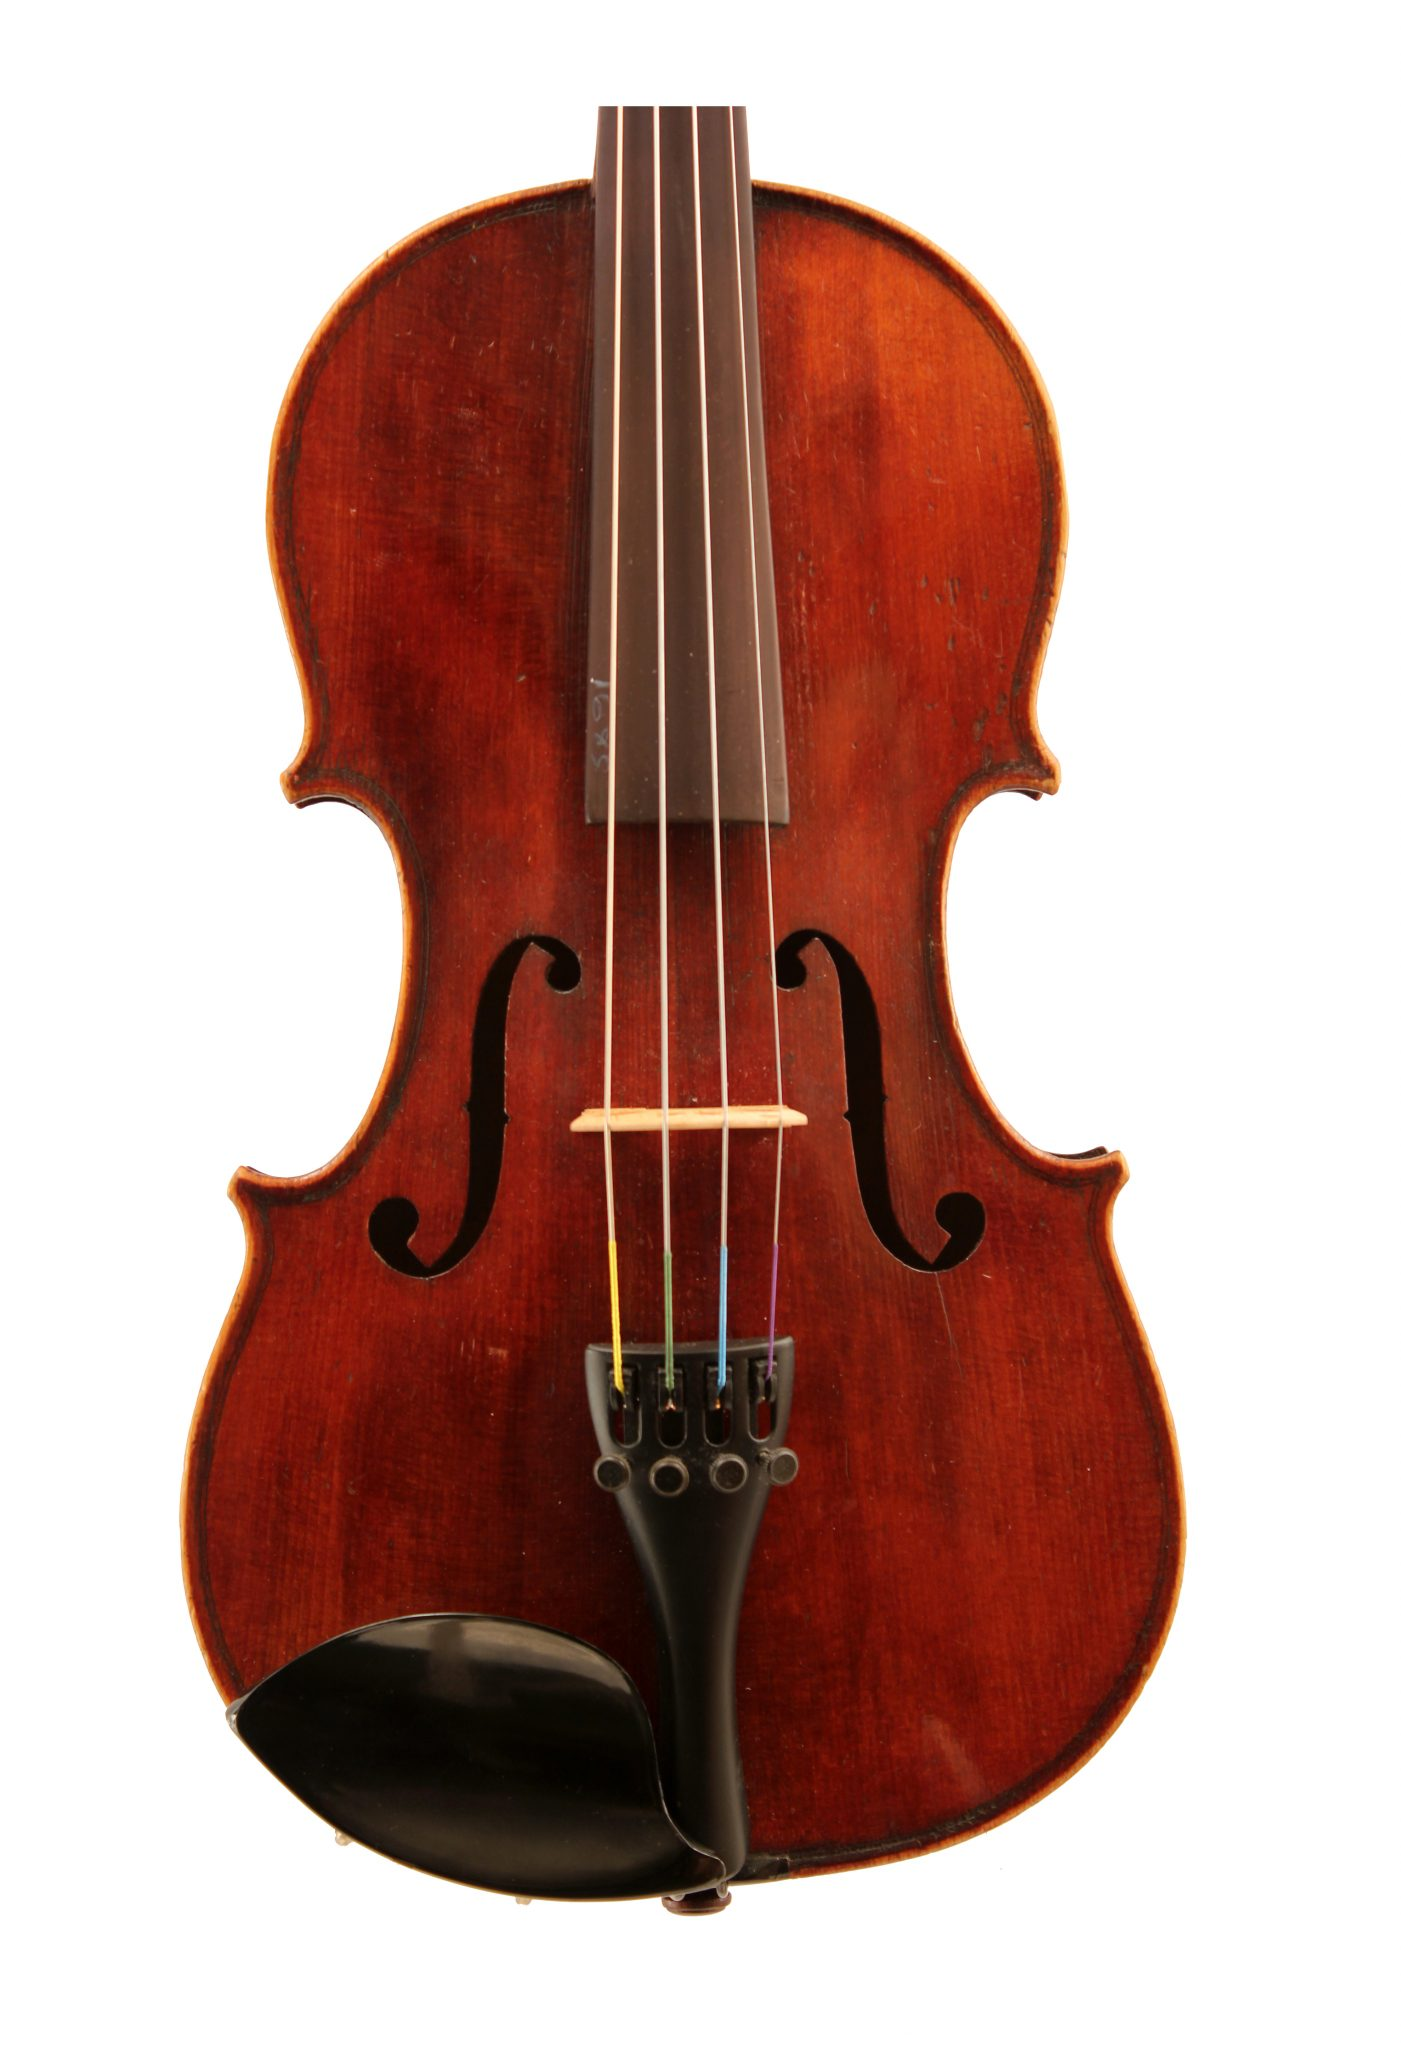 violin by Thibouville Lamy for sale at Bridgewood and Neitzert London